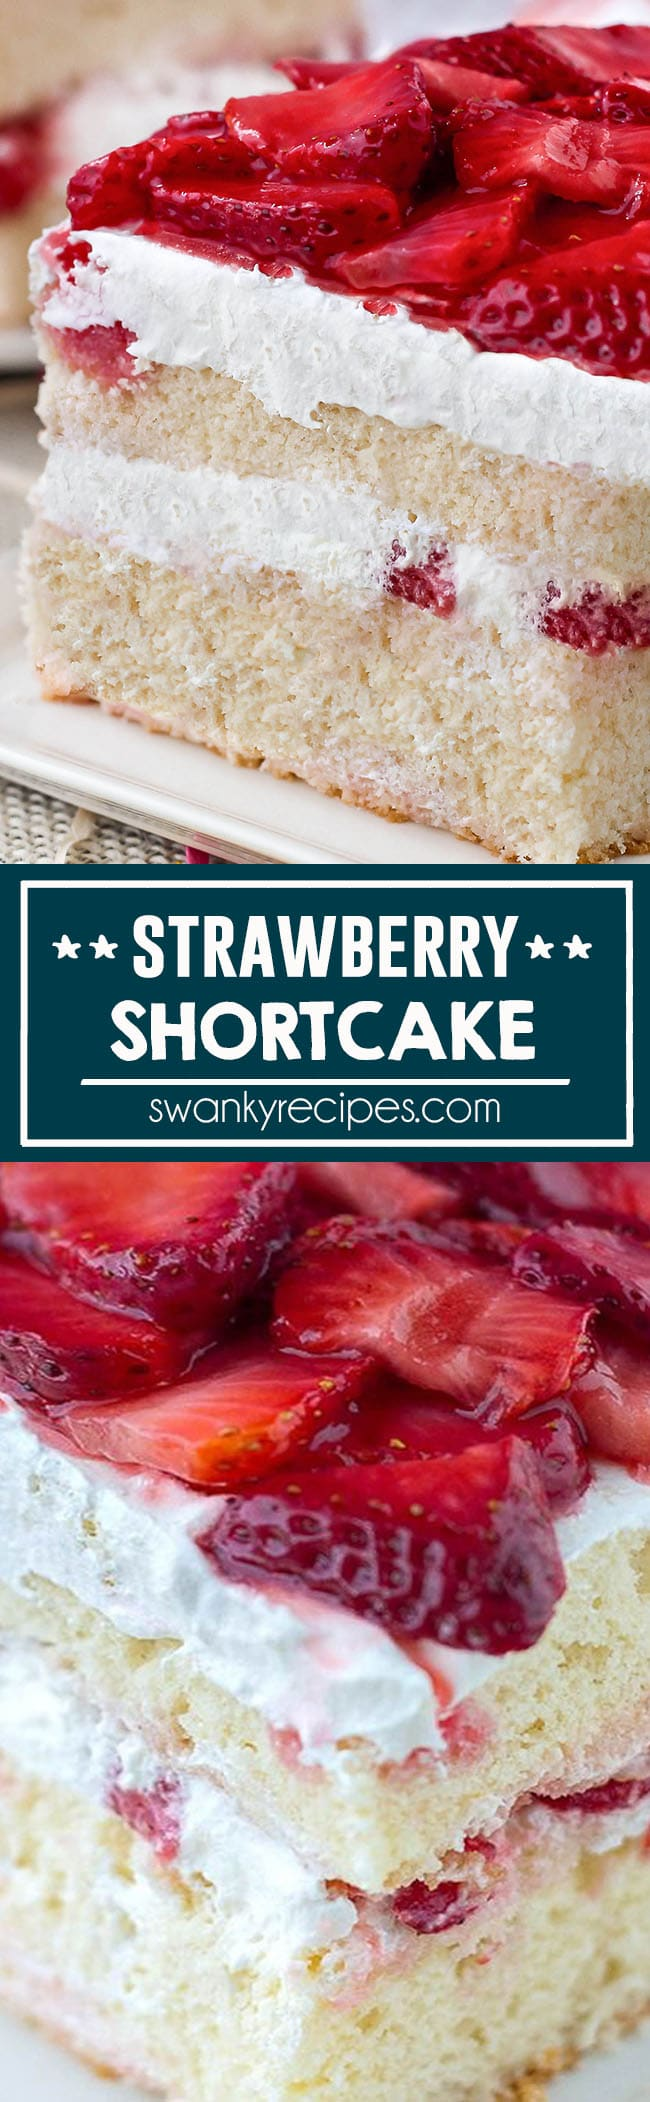 Strawberry Shortcake - The BEST strawberry shortcake with white cake layers and strawberries and whipped cream filling. Favorite summertime and spring cake for holiday parties.